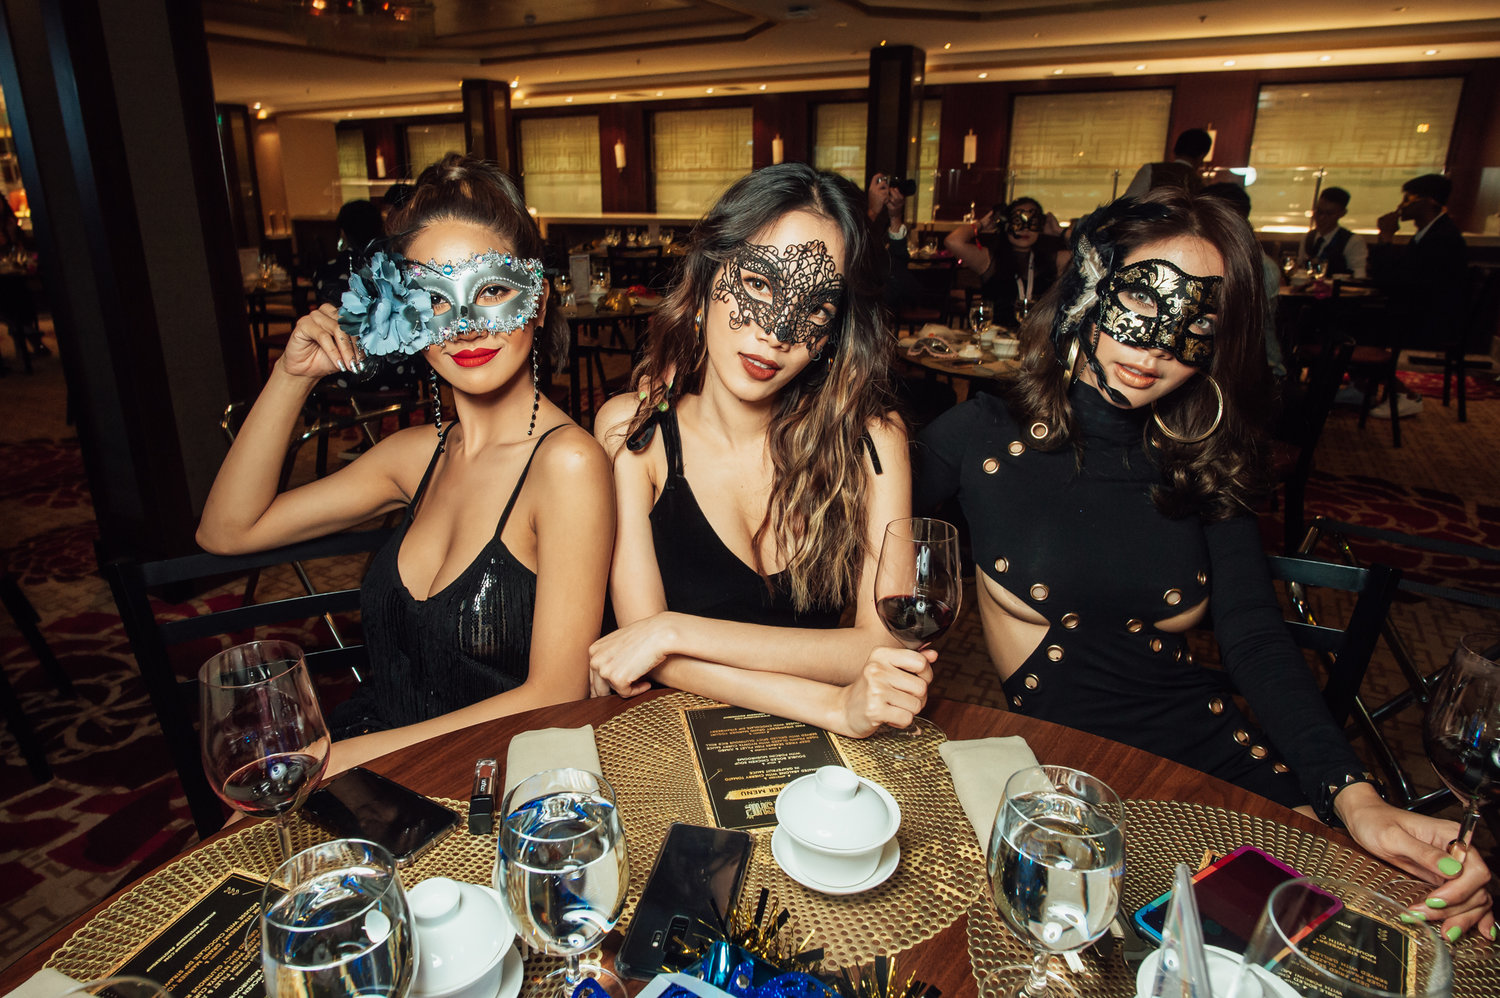 IT'S THE SHIP's 5th voyage at sea was celebrated in style at this year's Gala Night, where revellers turned up dressed to the nines to the theme of 'Black & Gold Masquerade'